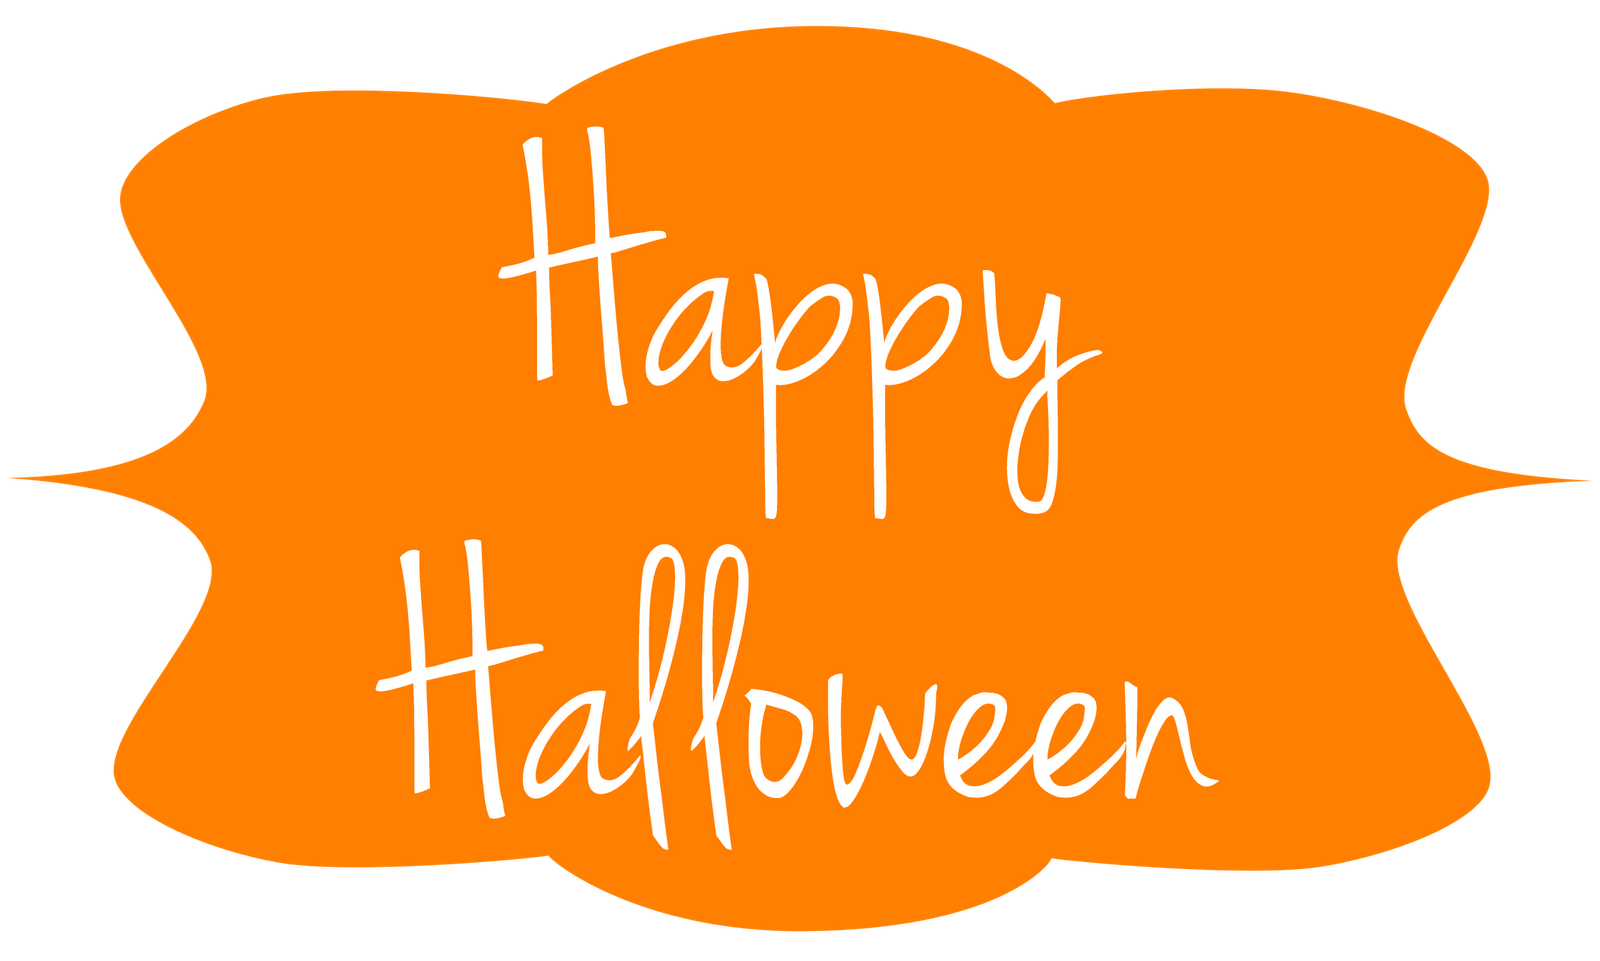 Happy halloween clipart black and white graphic royalty free library Happy Halloween Clipart | Best Ever Quotes And Images | Photo booth ... graphic royalty free library